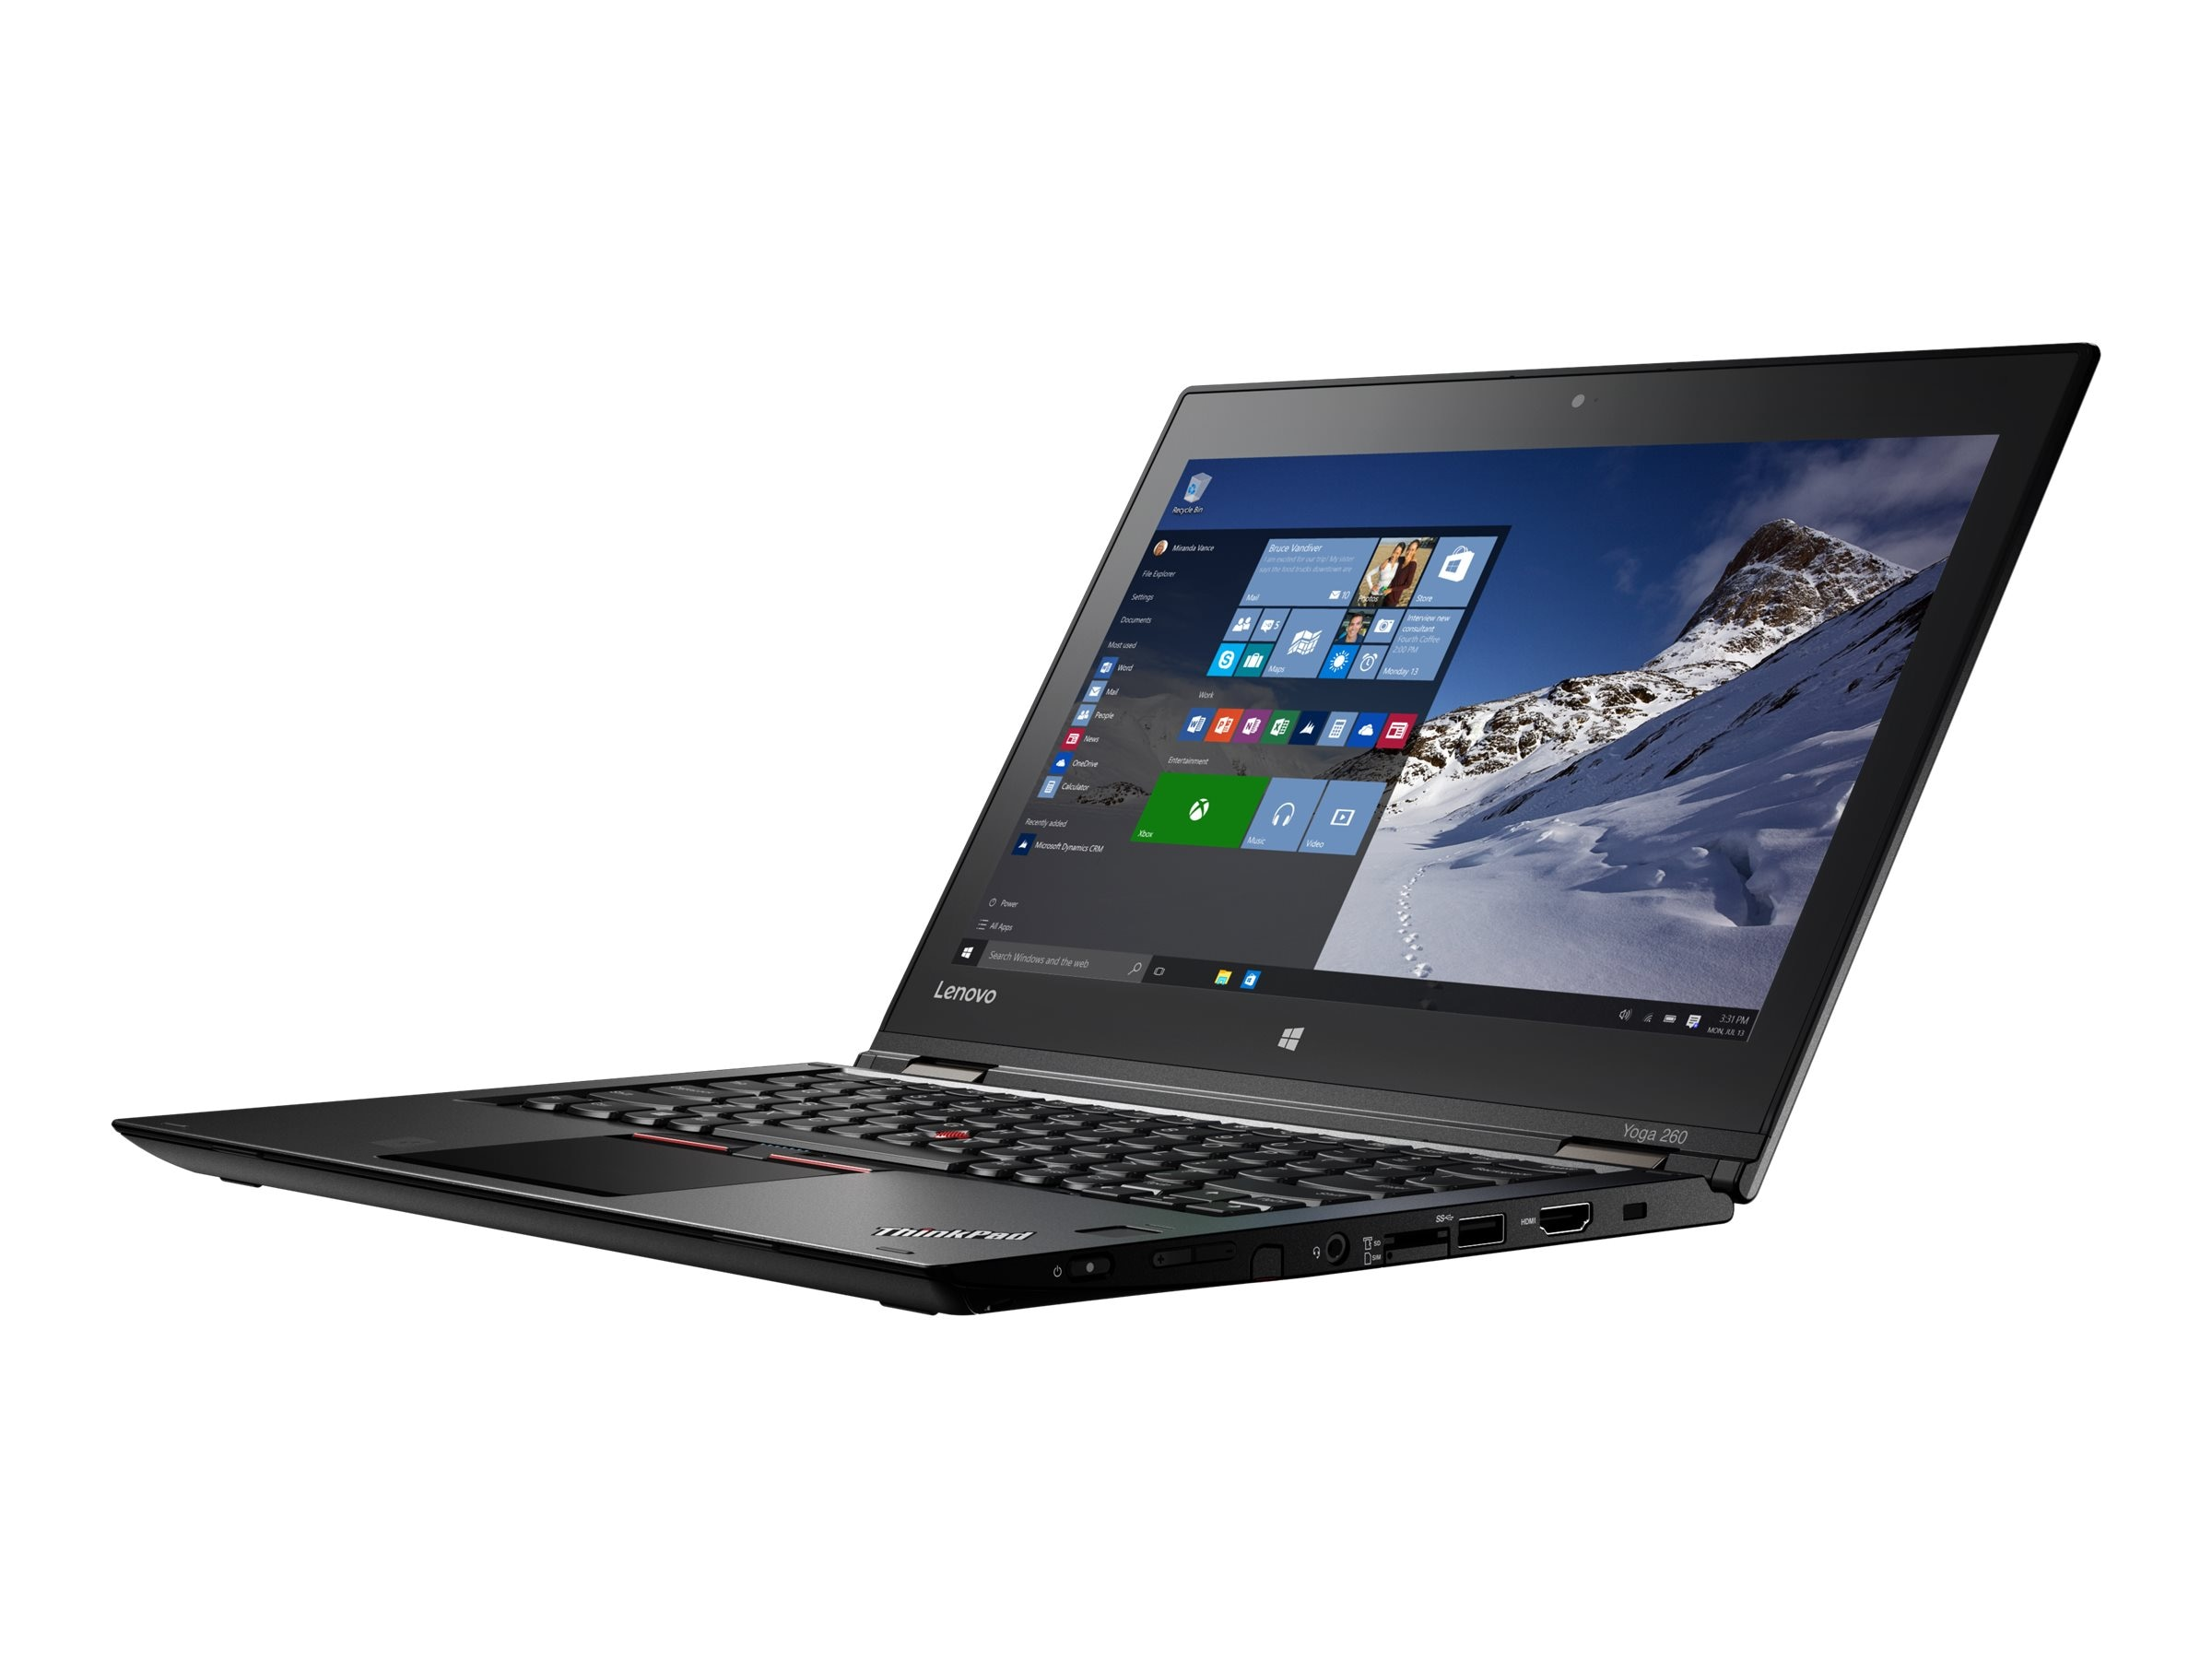 Lenovo TopSeller ThinkPad Yoga 260 Core i7-6500U 2.5GHz 8GB 256GB OPAL2 ac BT FR WC 4C 12.5 FHD MT W10P64